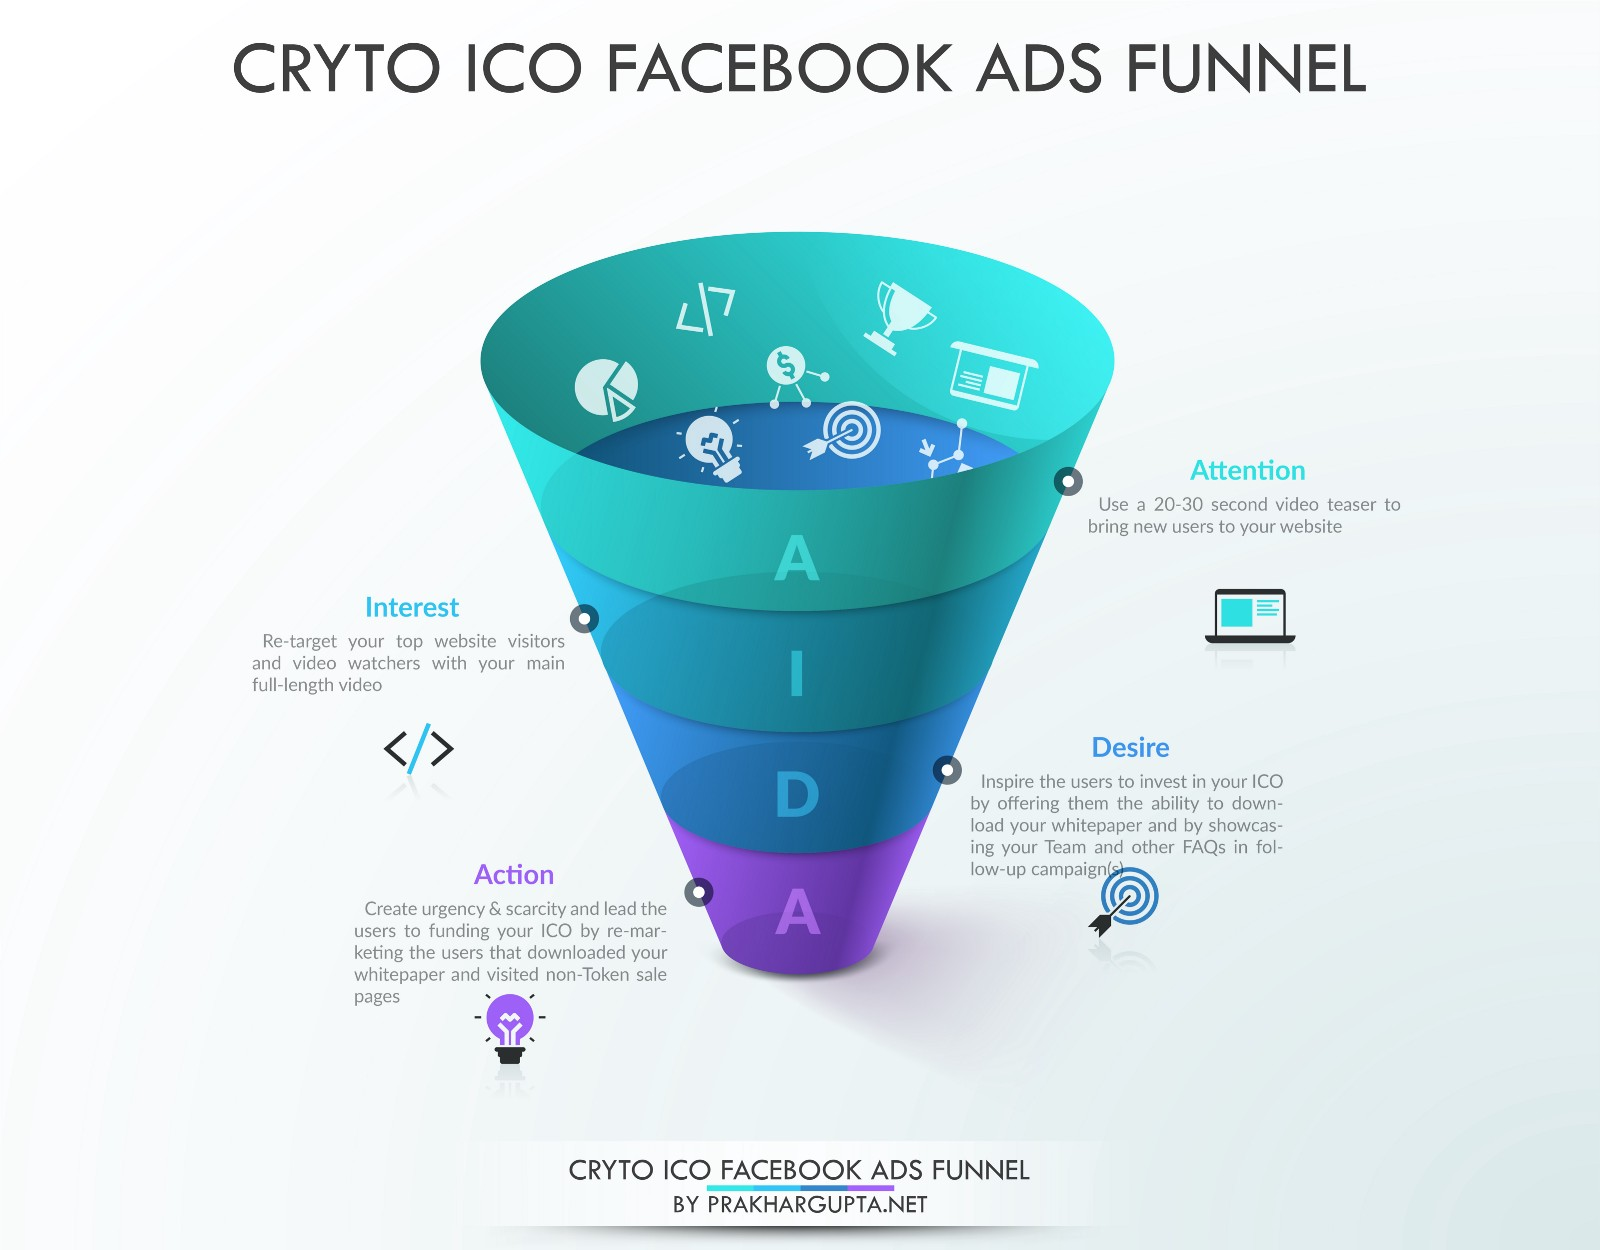 Blueprint to marketing your ico using facebook ads blackhatworld in the infographic below i have explained what a sample funnel could look like for marketing an ico over facebook ads malvernweather Images